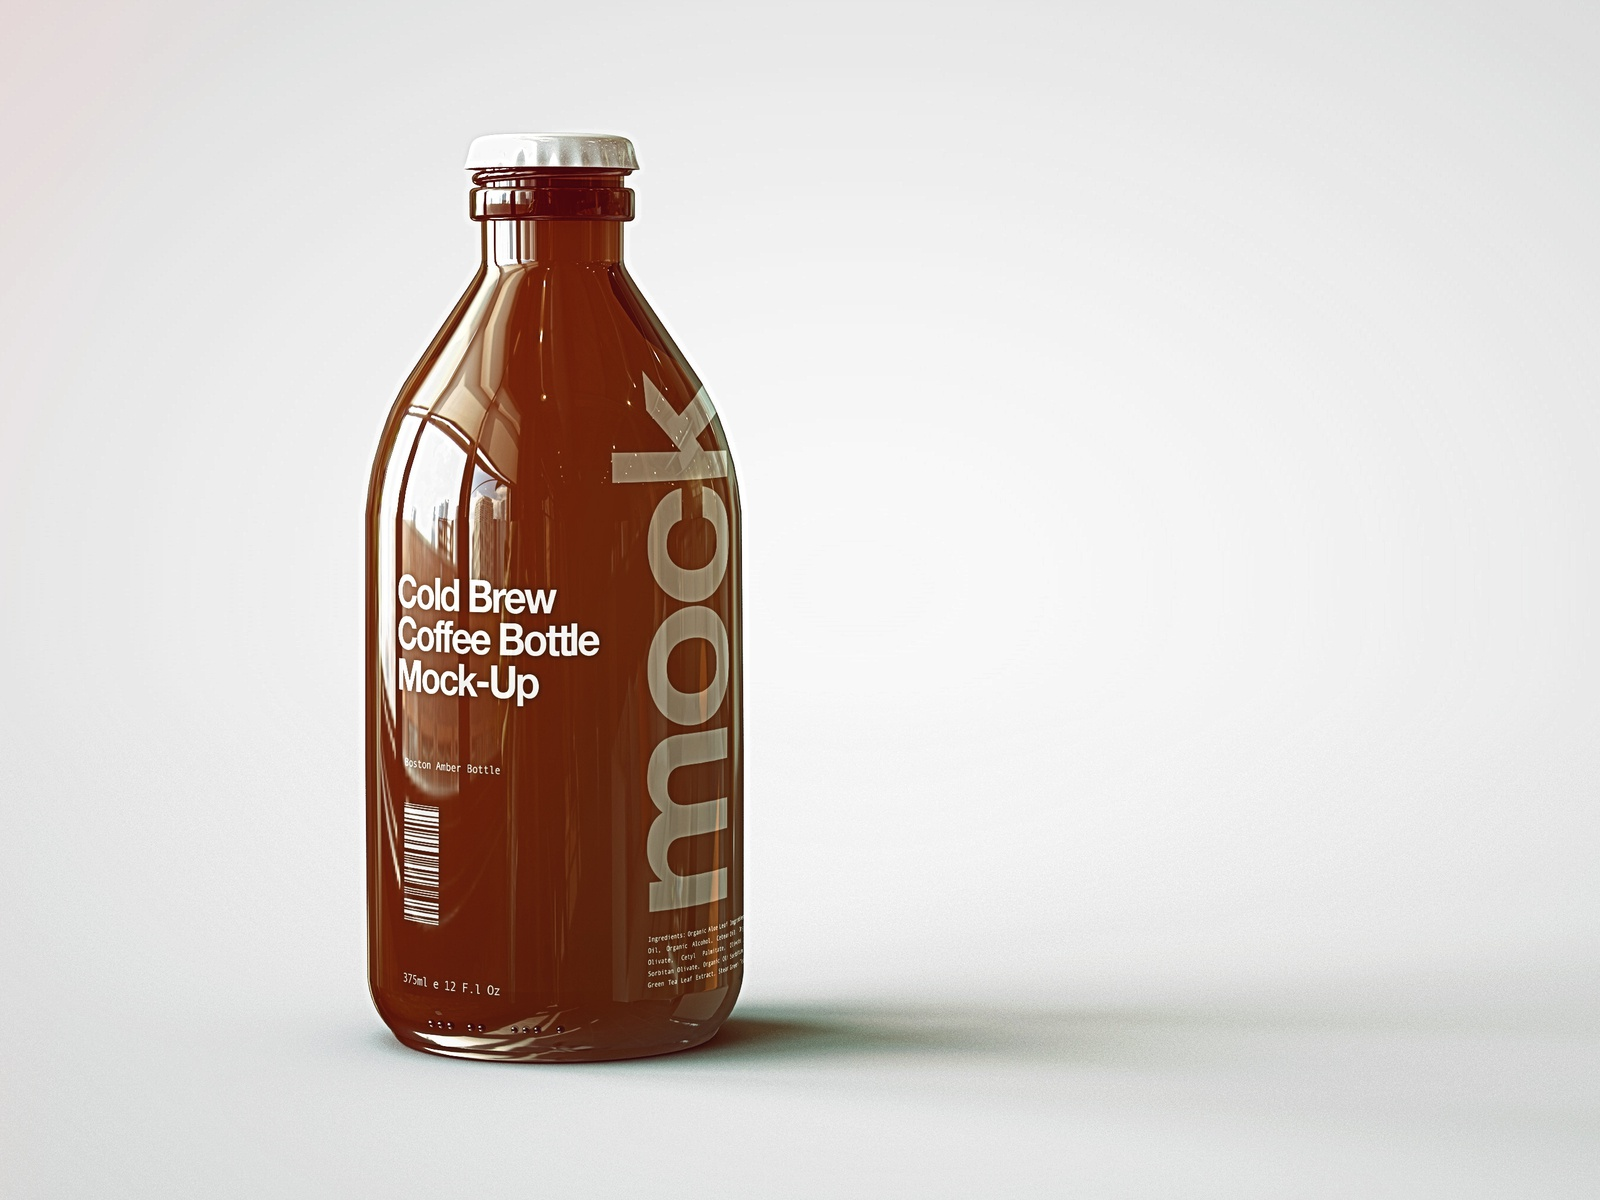 Cold Brew Coffee Bottle Mock-Up by Joshua Connelly on Dribbble